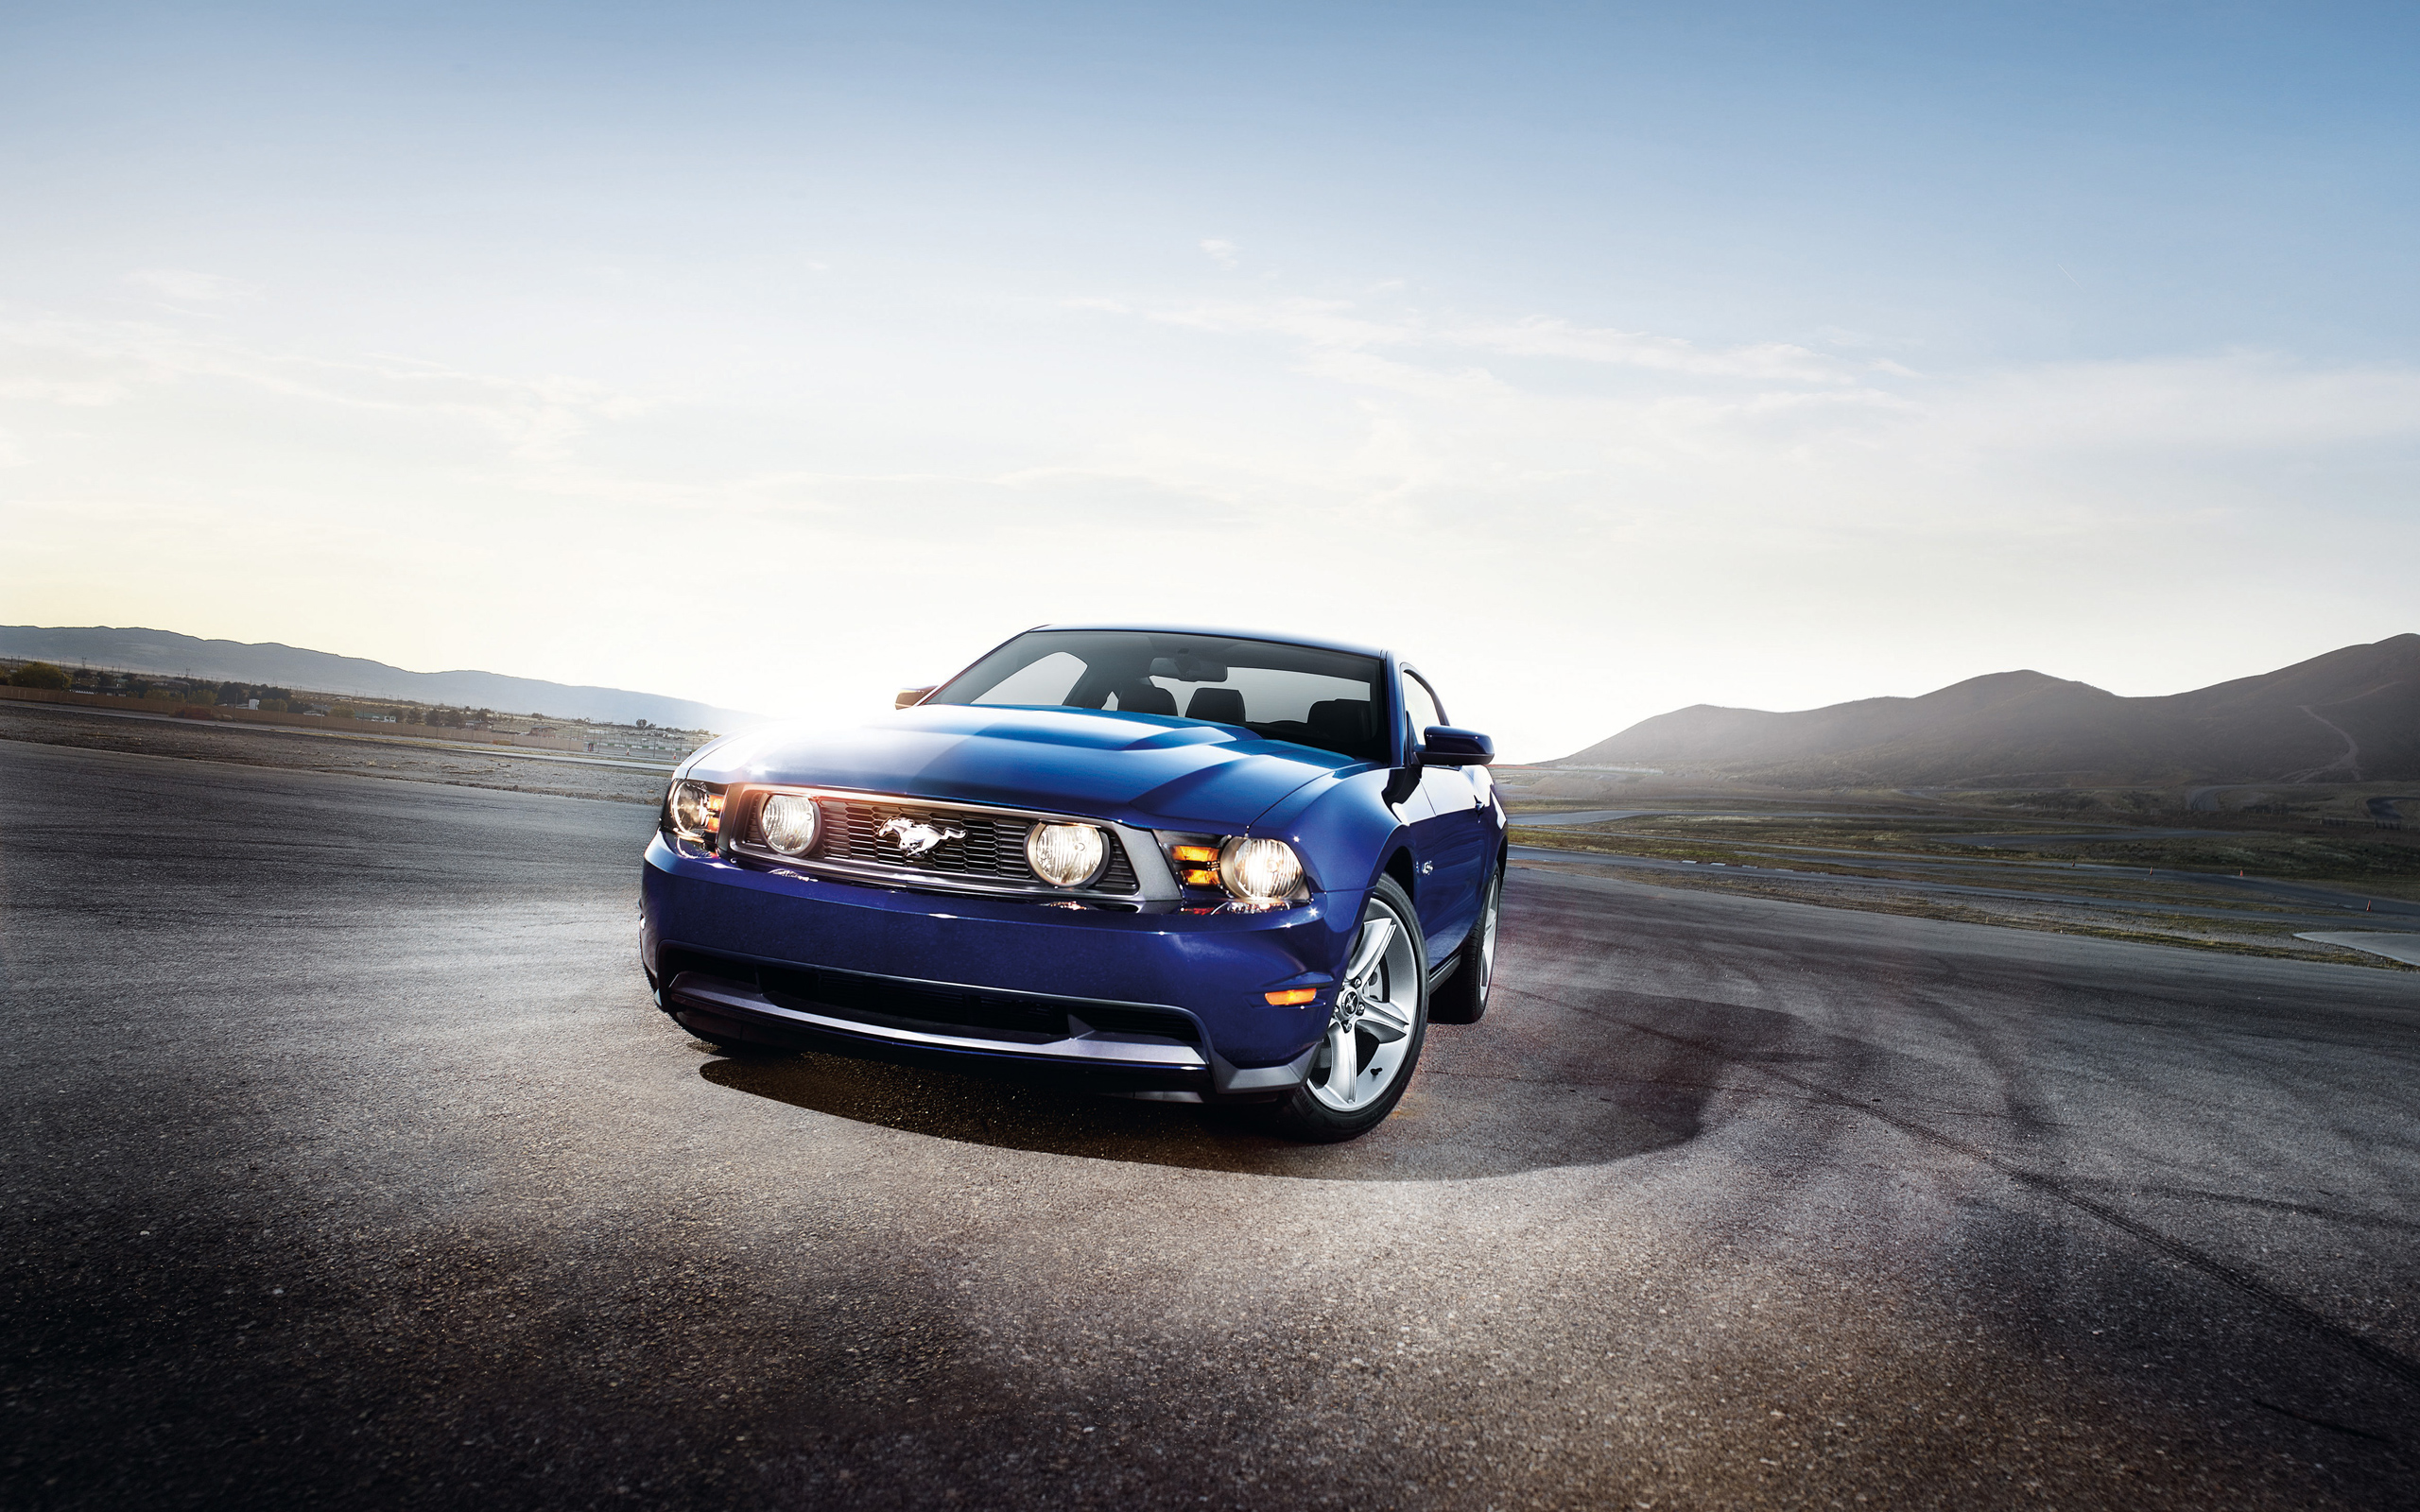 Ford Mustang Shelby GT500 2012 Wallpapers HD Wallpapers 2560x1600